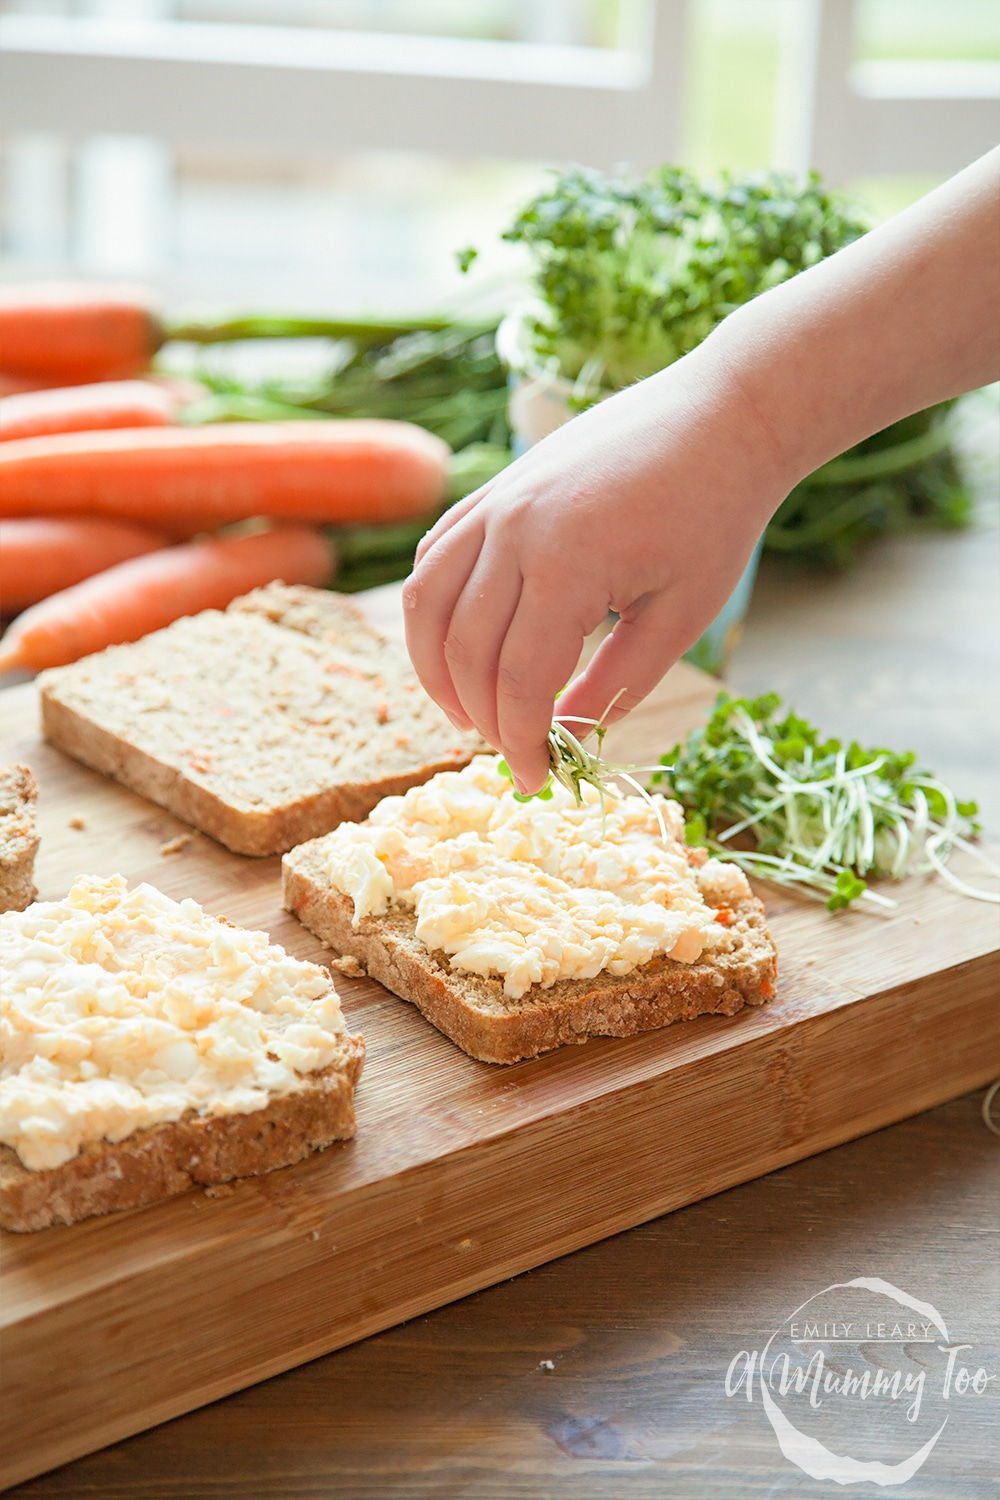 Sprinkling the home-grown cress onto the egg mayo sandwich filling